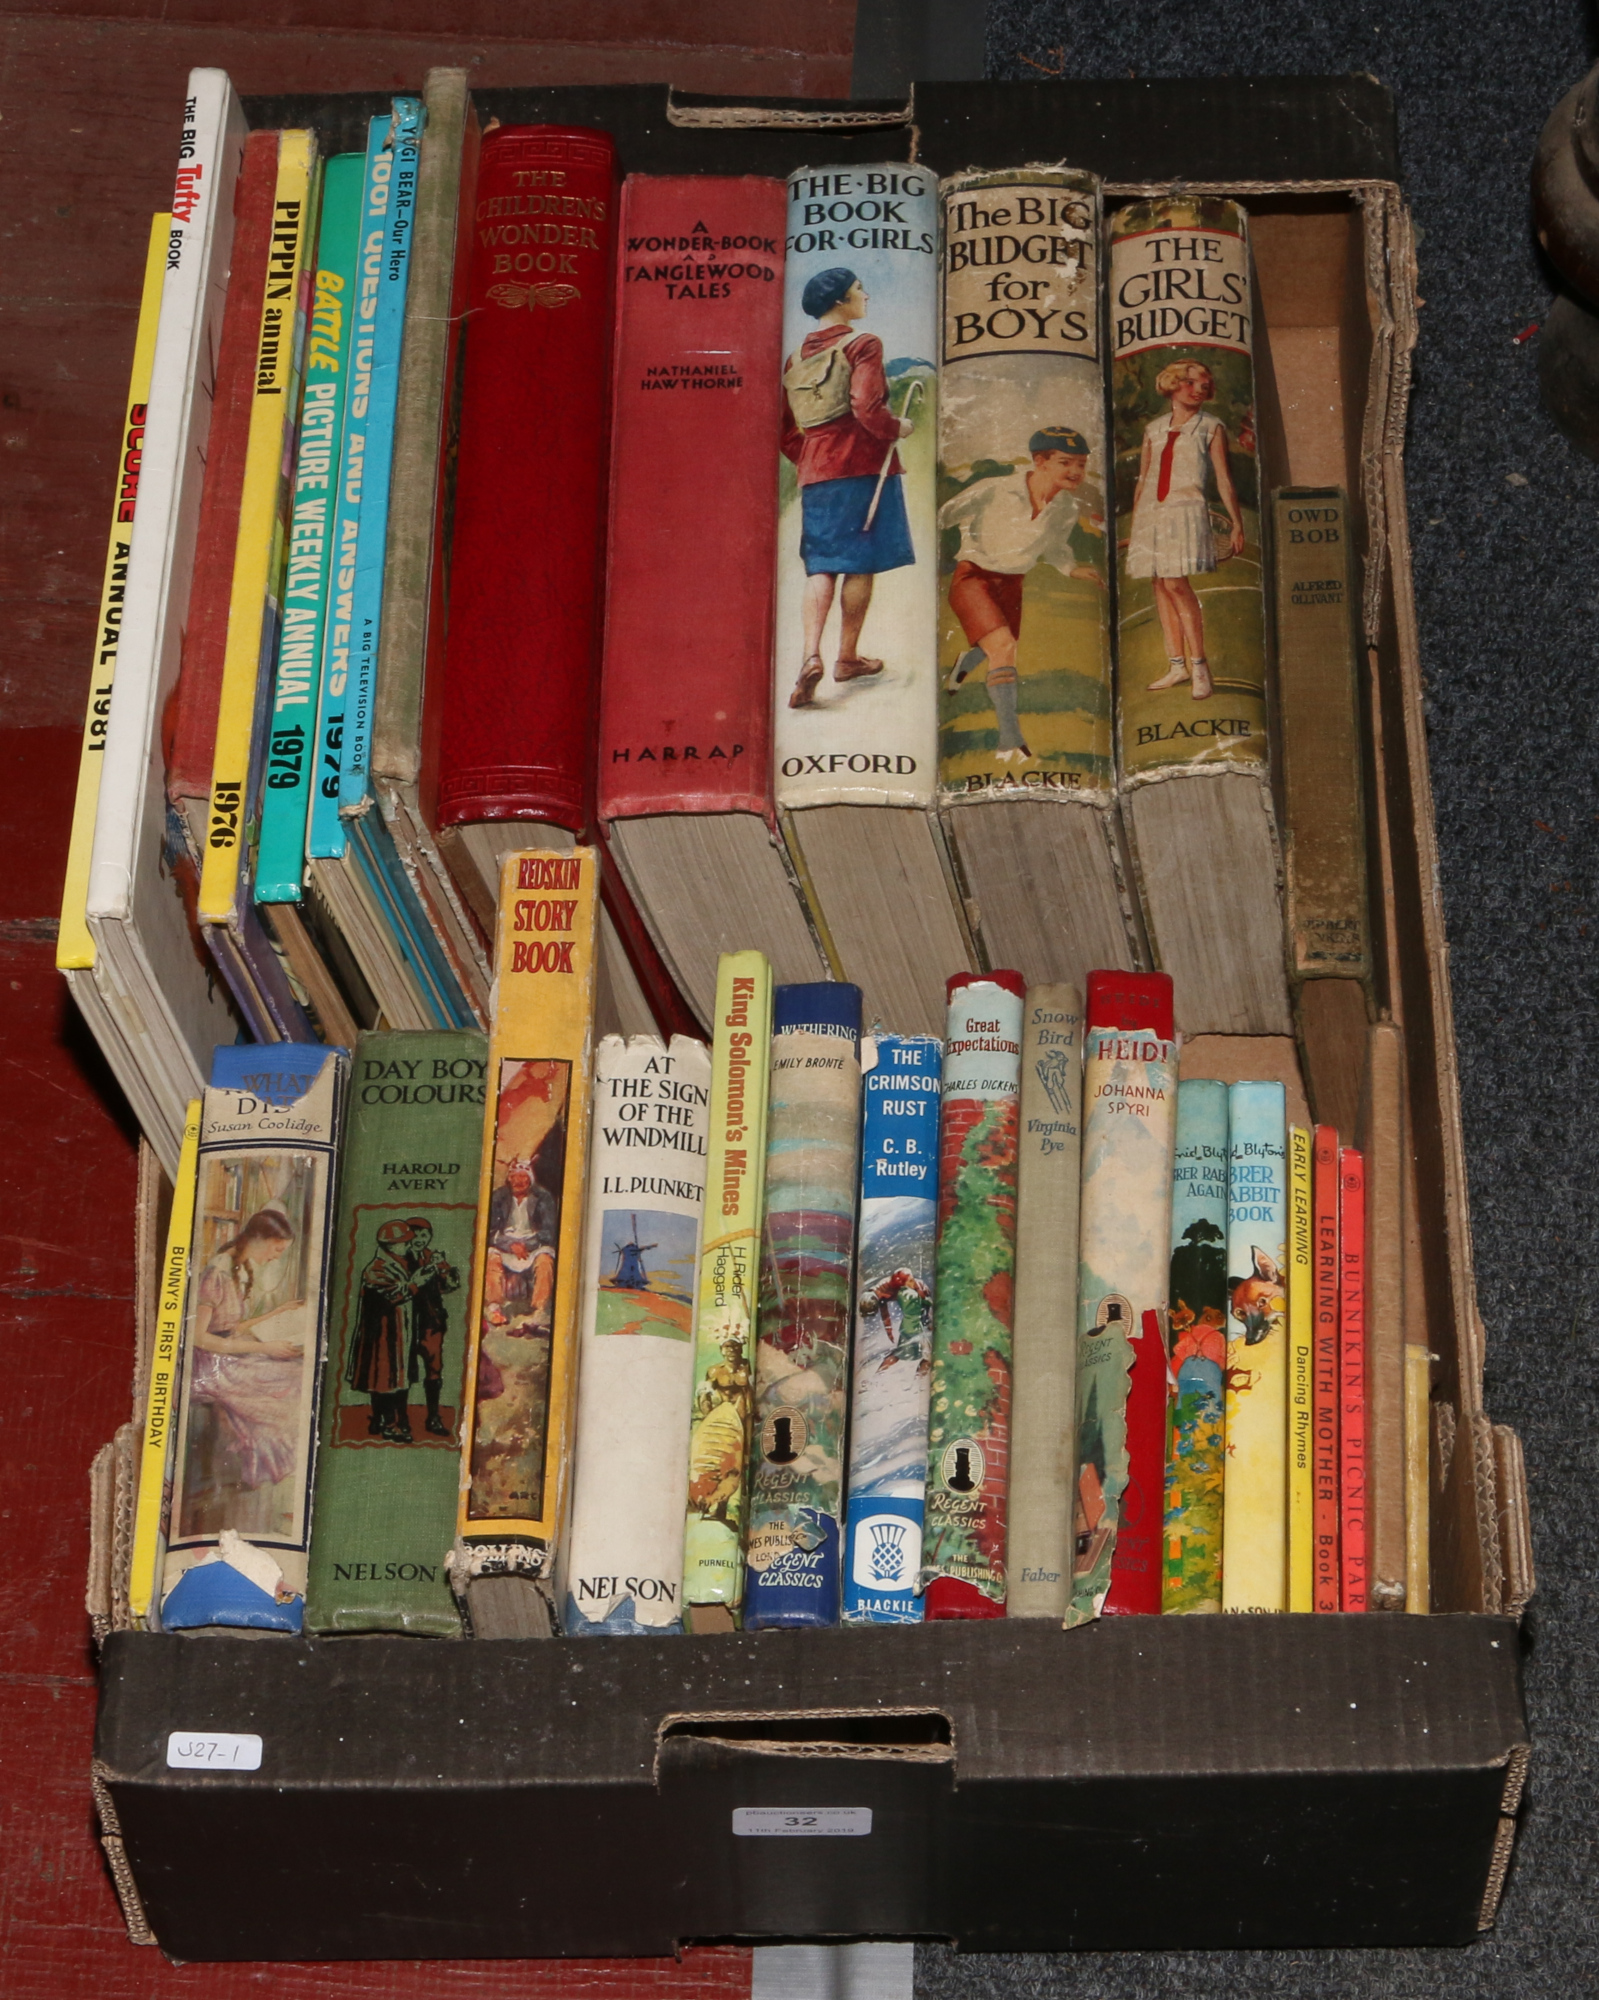 Lot 32 - A box of children's hardback story books, The Girls Wonder Years, Budget for Boys and Girls